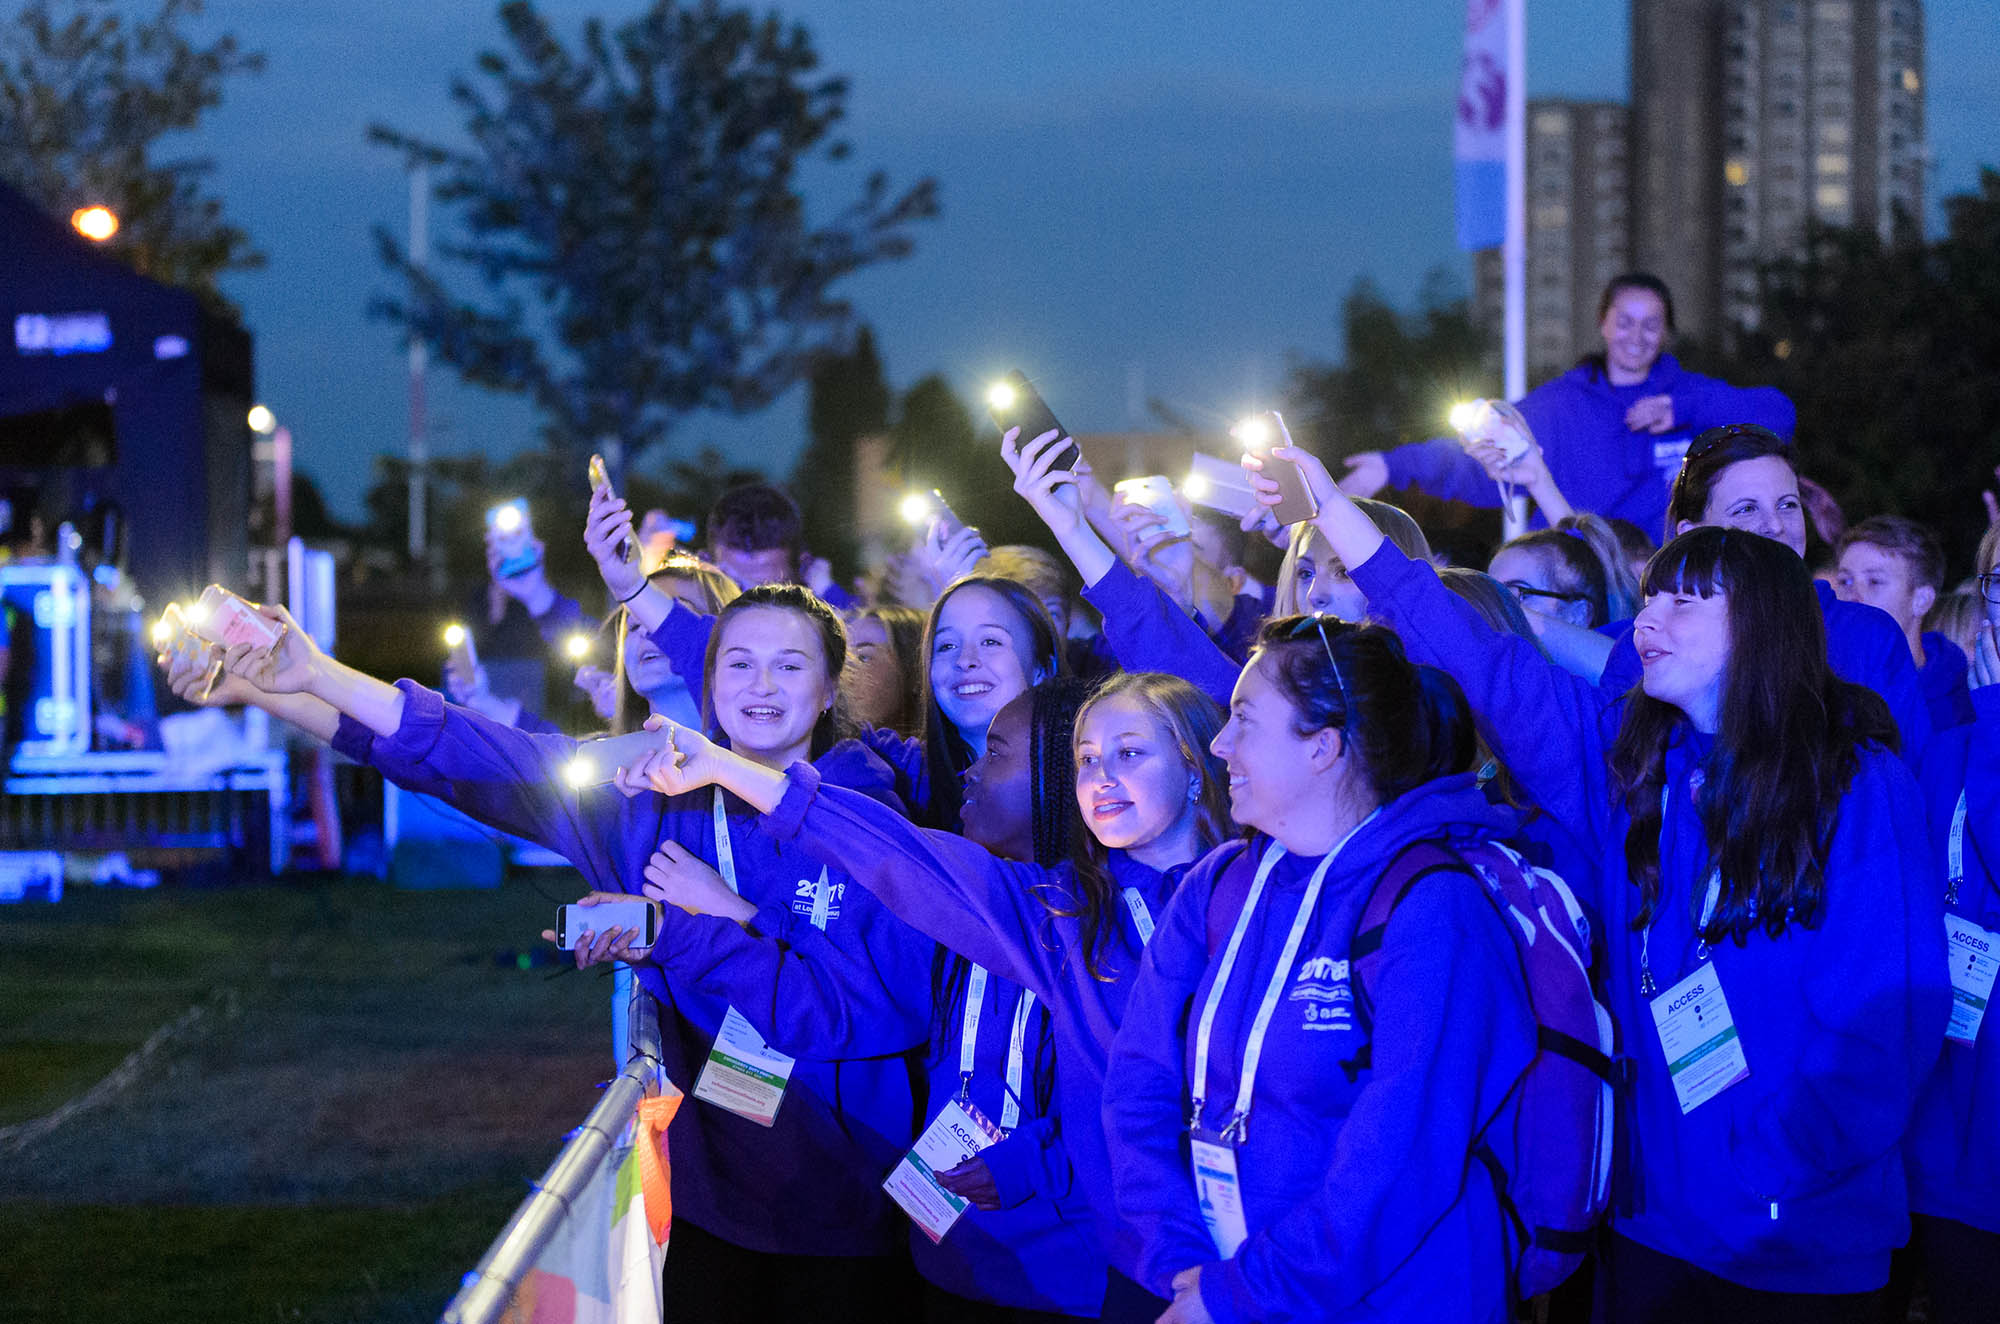 group of girls with lights on phone smiling at School Games opening ceremony